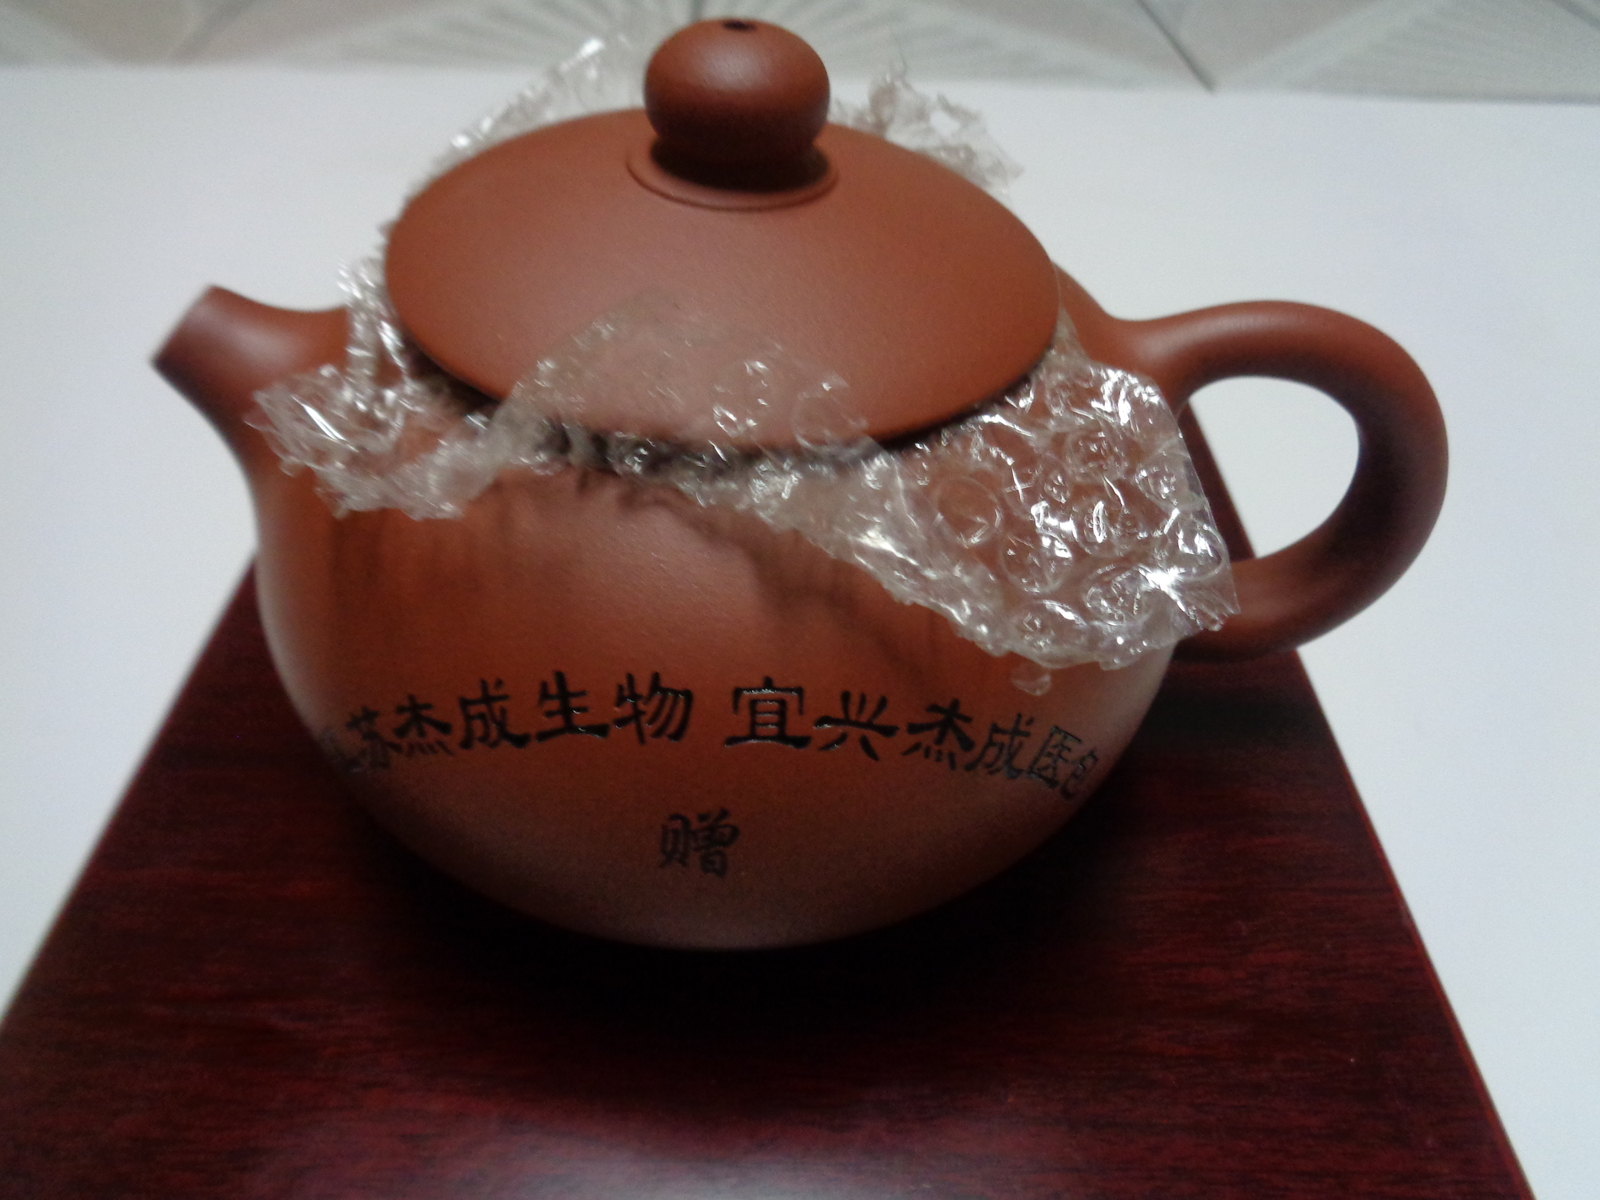 Clay China Tea Teapot New in Rosewood Box & Carrying Case